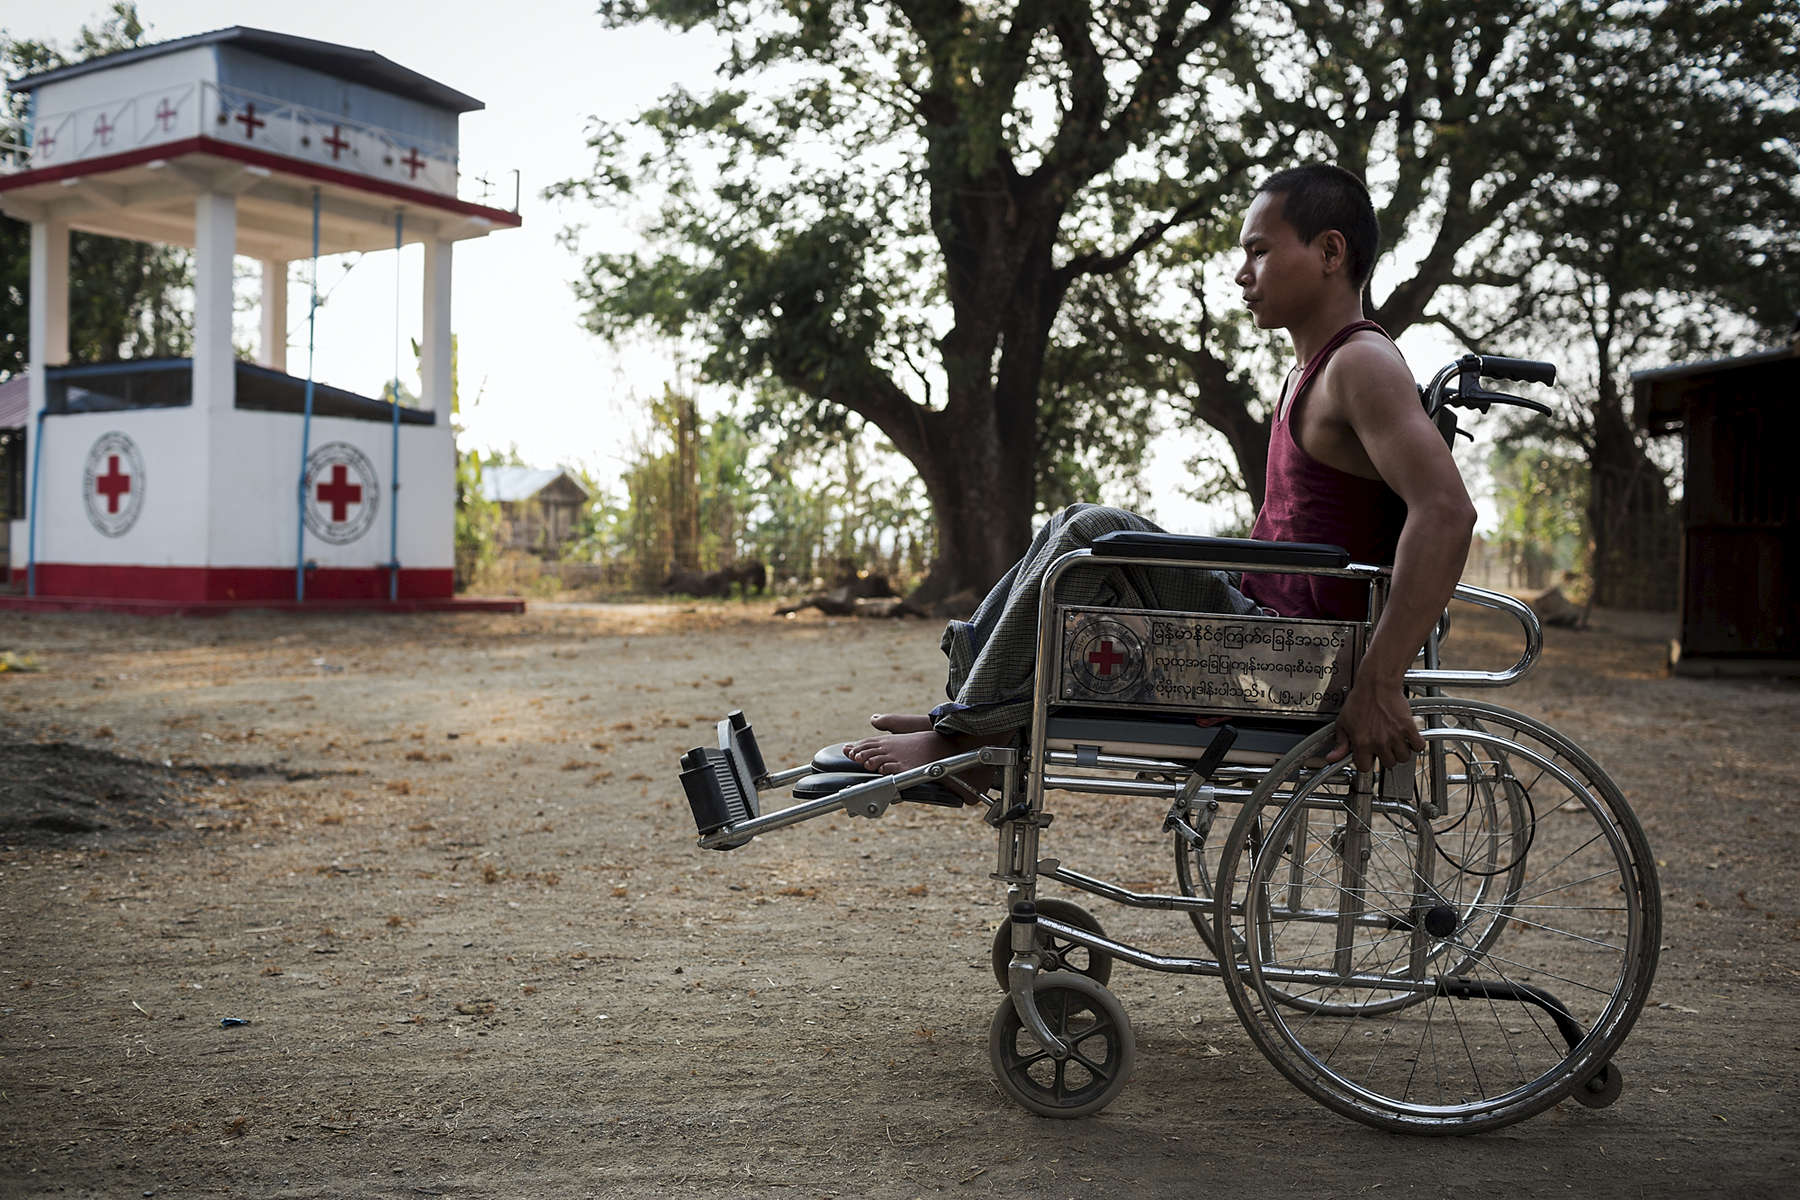 In the late afternoon as it cools down Aung Myo Oo, 22 years old, pushes himself through Yin Ywa village to go and chat with his friends. Two years ago in a farming accident Aung Myo Oo become paralysed, as part of the current project he was provided a wheel chair so he can move around independantly. The Australian Red Cross in partnership with Myanmar Red Cross has been carrying out a Community Based Health & Resilience project in Yin Ywa and a number of other villages in central Myanmar, an area known as the Dry Zone. . A major part of the project is community education. After ensuring quality community education, the project then install physical hardware, taps, tanks, toilets etc. When considering where to place communal water points the project consults the community to identify vulnerable member such as the elderly and disabled who may struggle to travel distances with heavy loads of water.